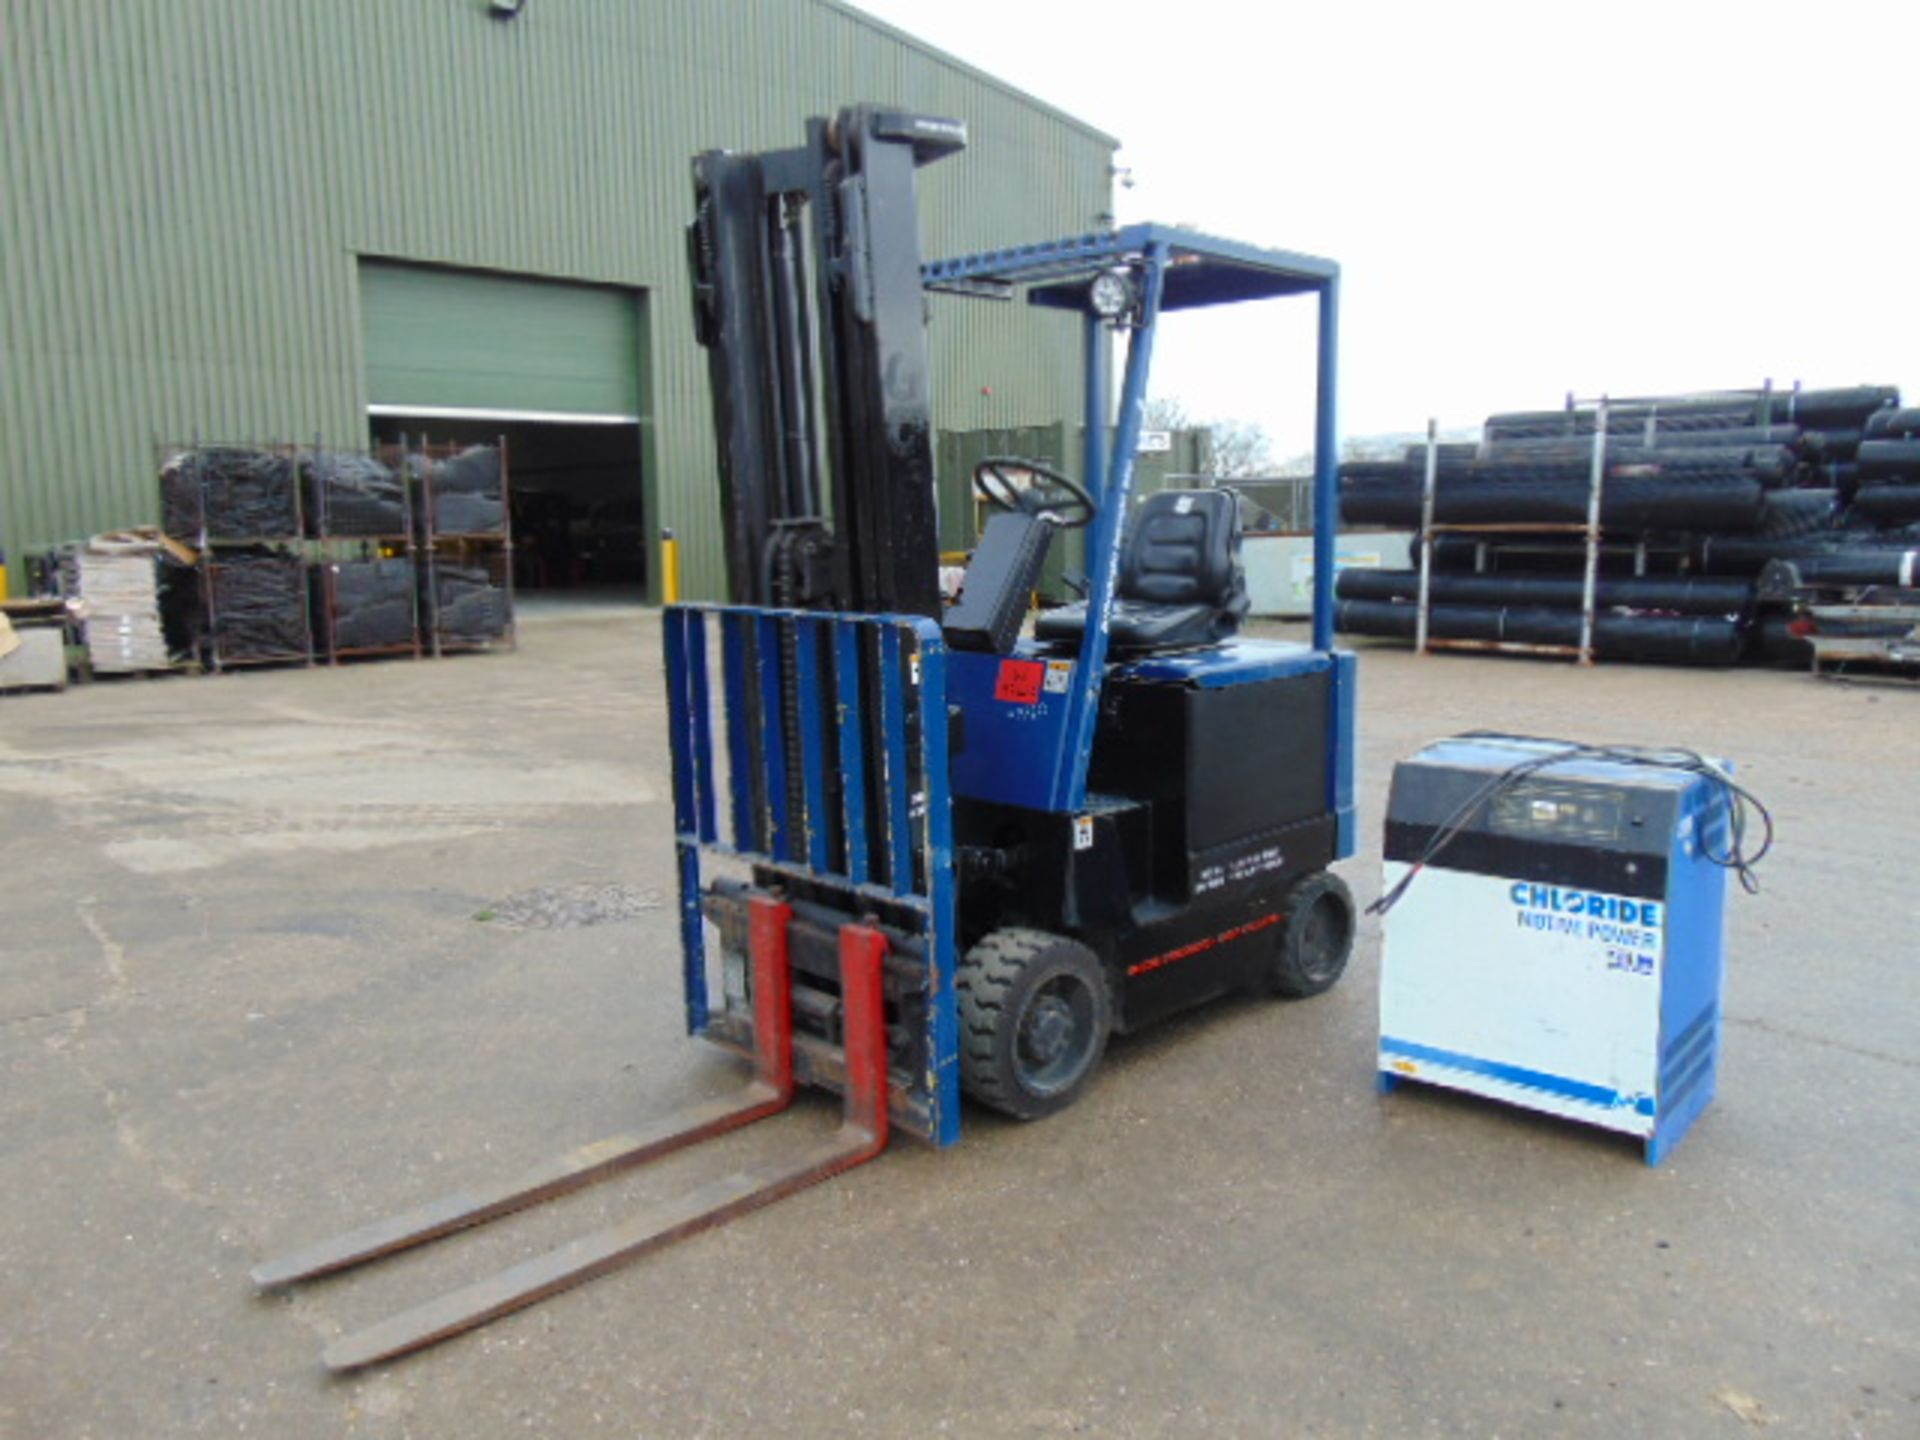 Lot 26 - Hyster E2.50 XL Electric Fork Lift Truck c/w Battery Charger